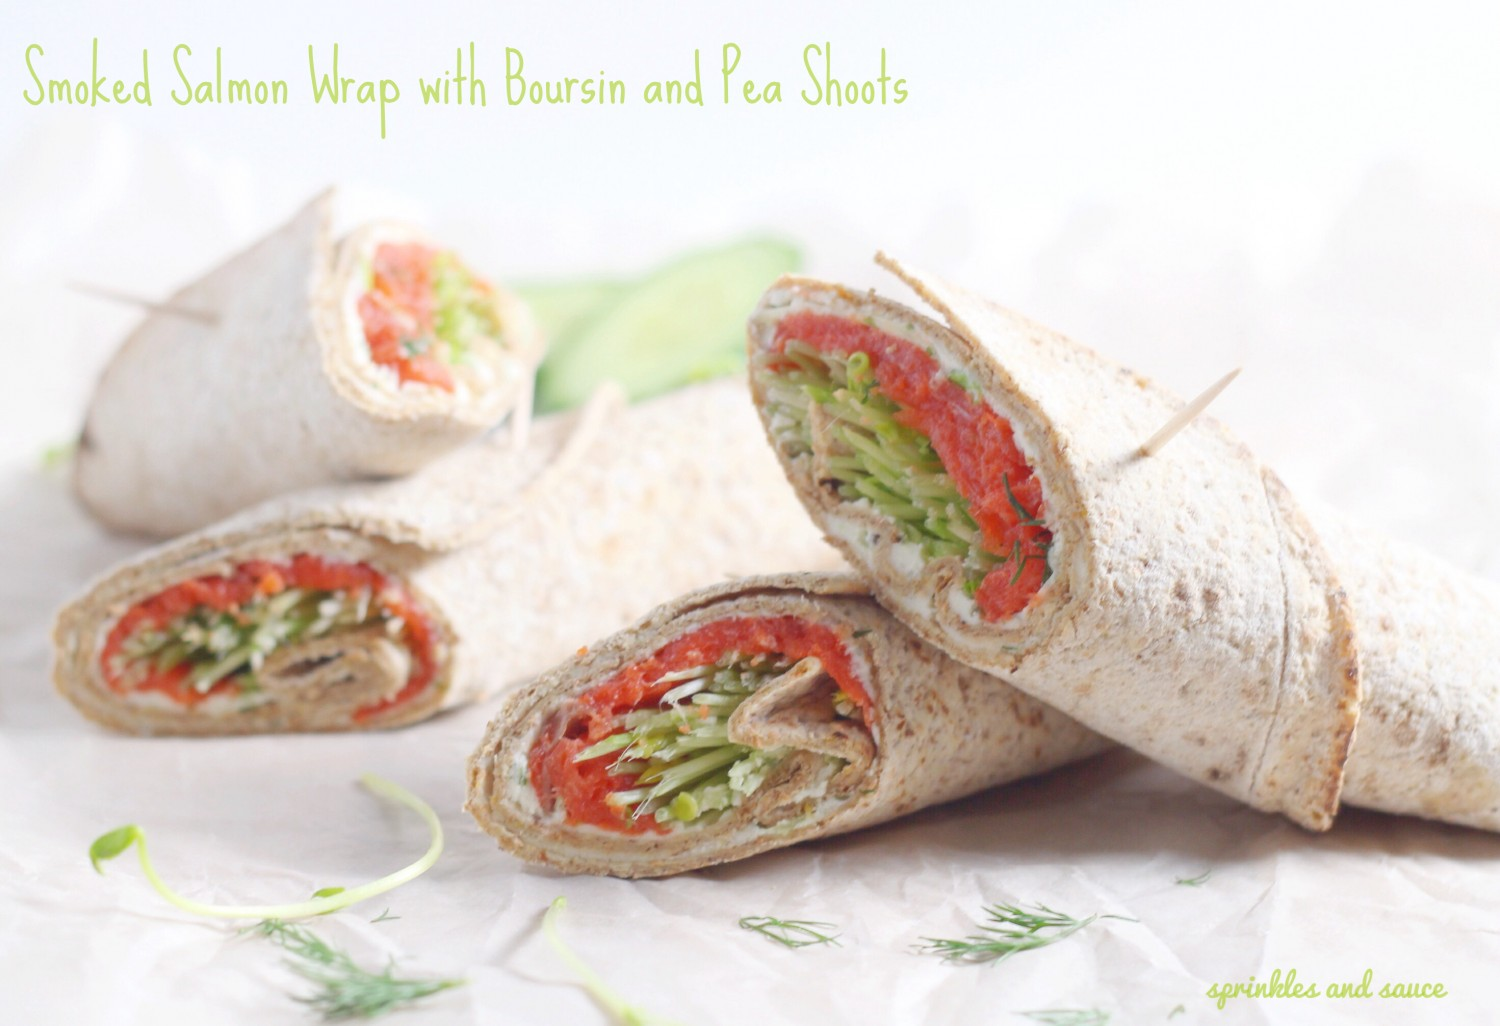 Smoked Salmon Wrap with Boursin and Pea Shoots1